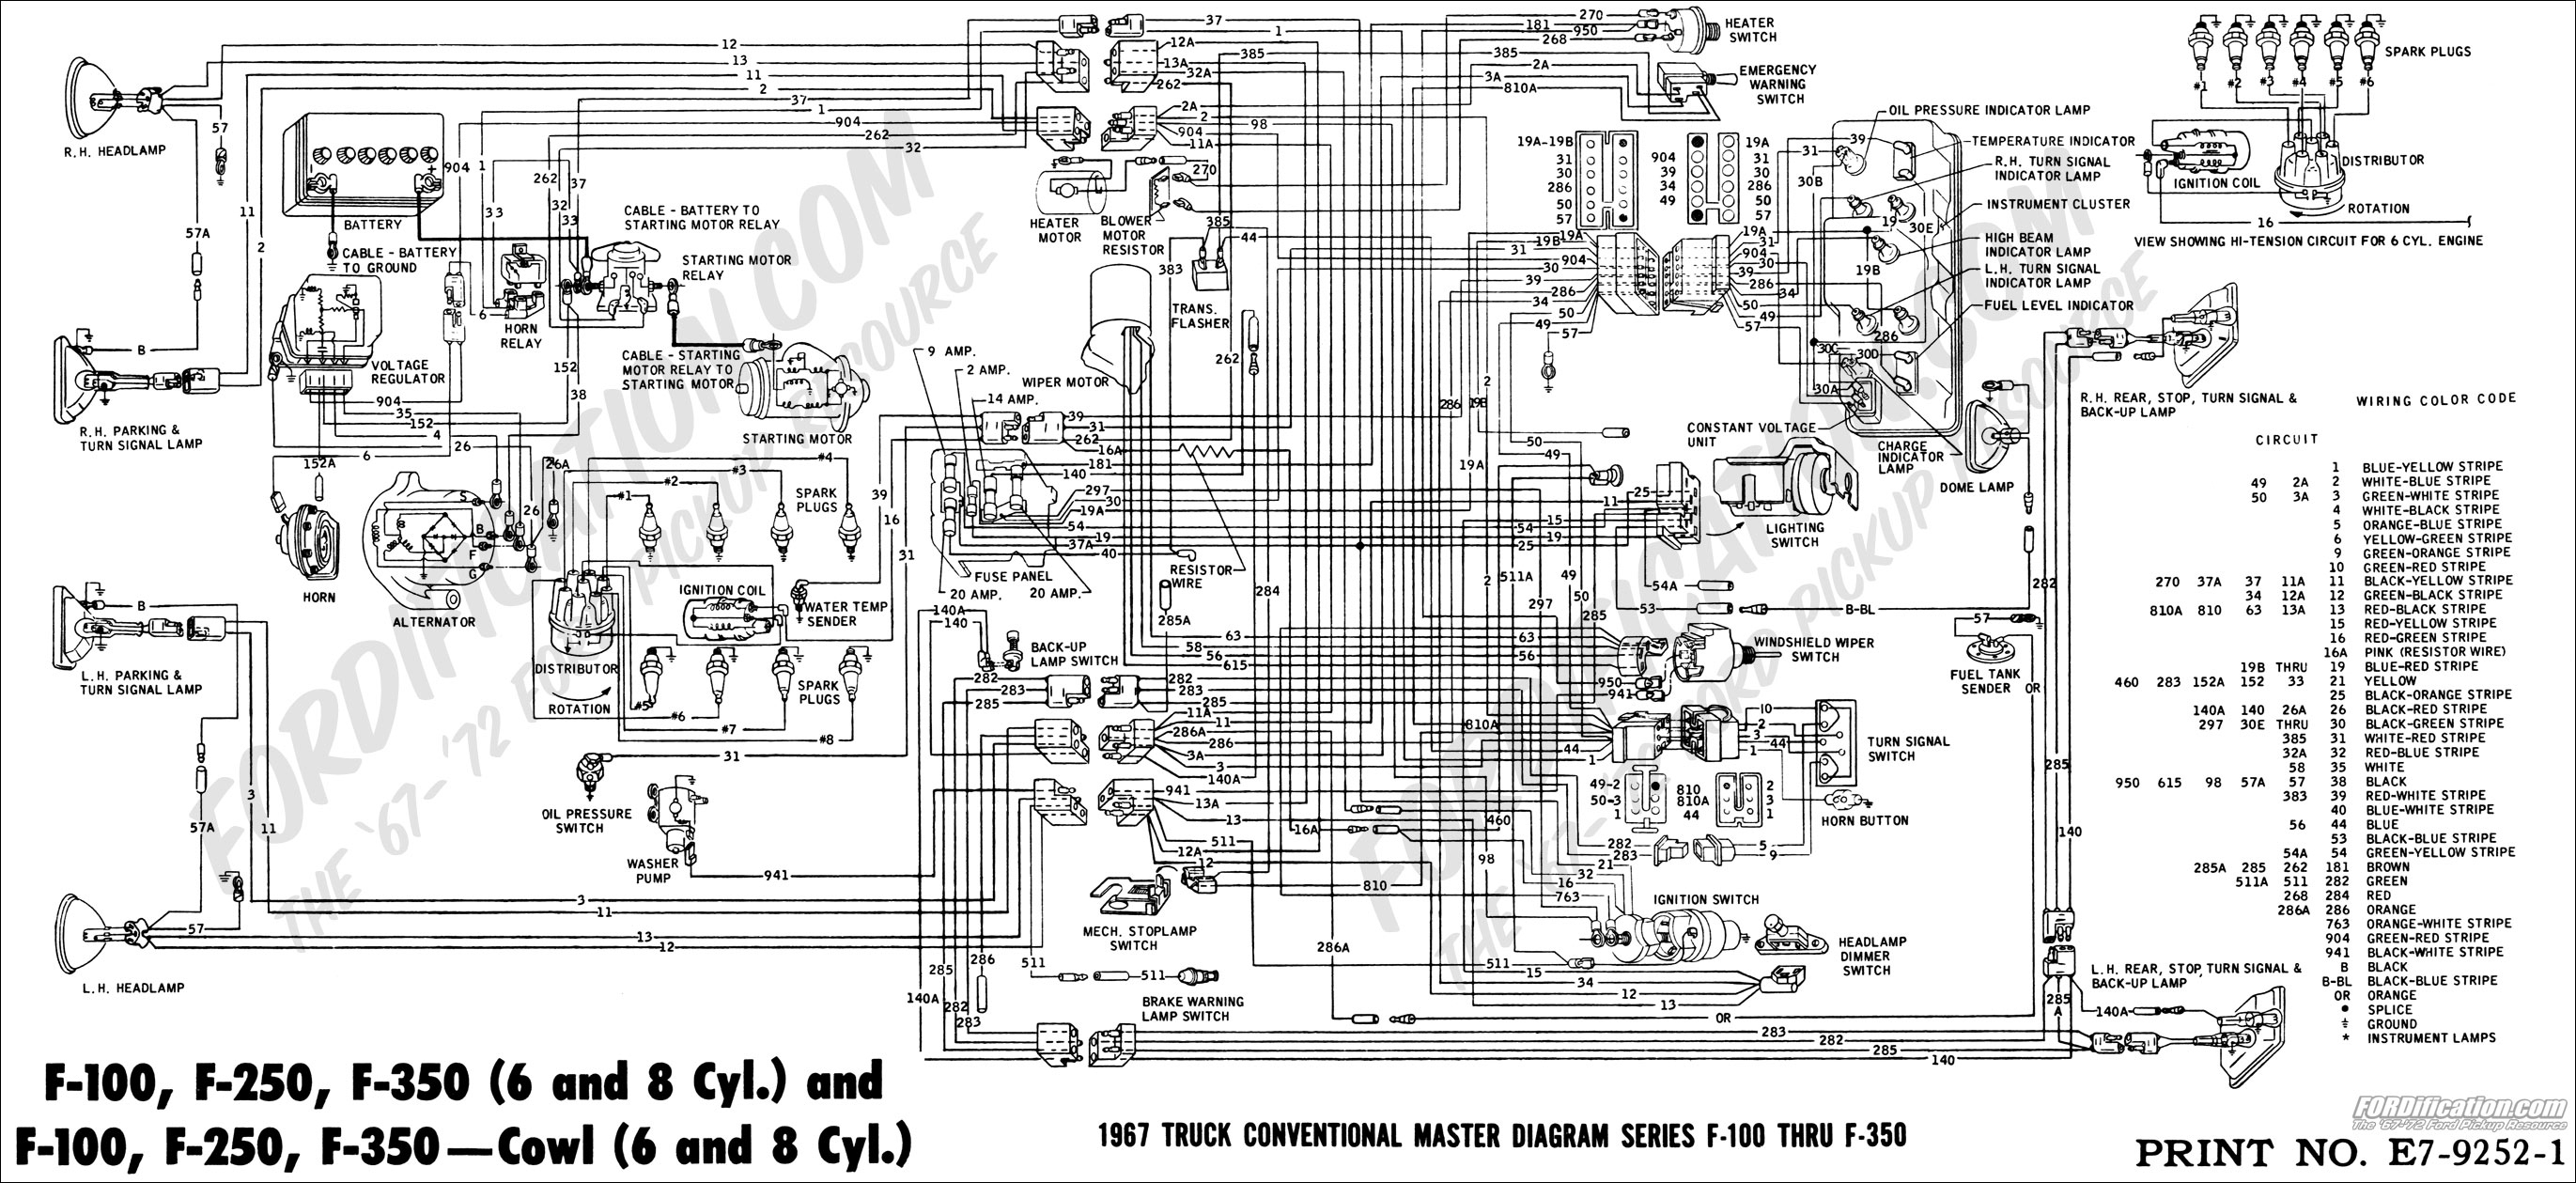 Ford Truck F250 Trailer Wiring Harness Diagram | Wiring Diagram - 1993 Ford F250 Trailer Wiring Diagram